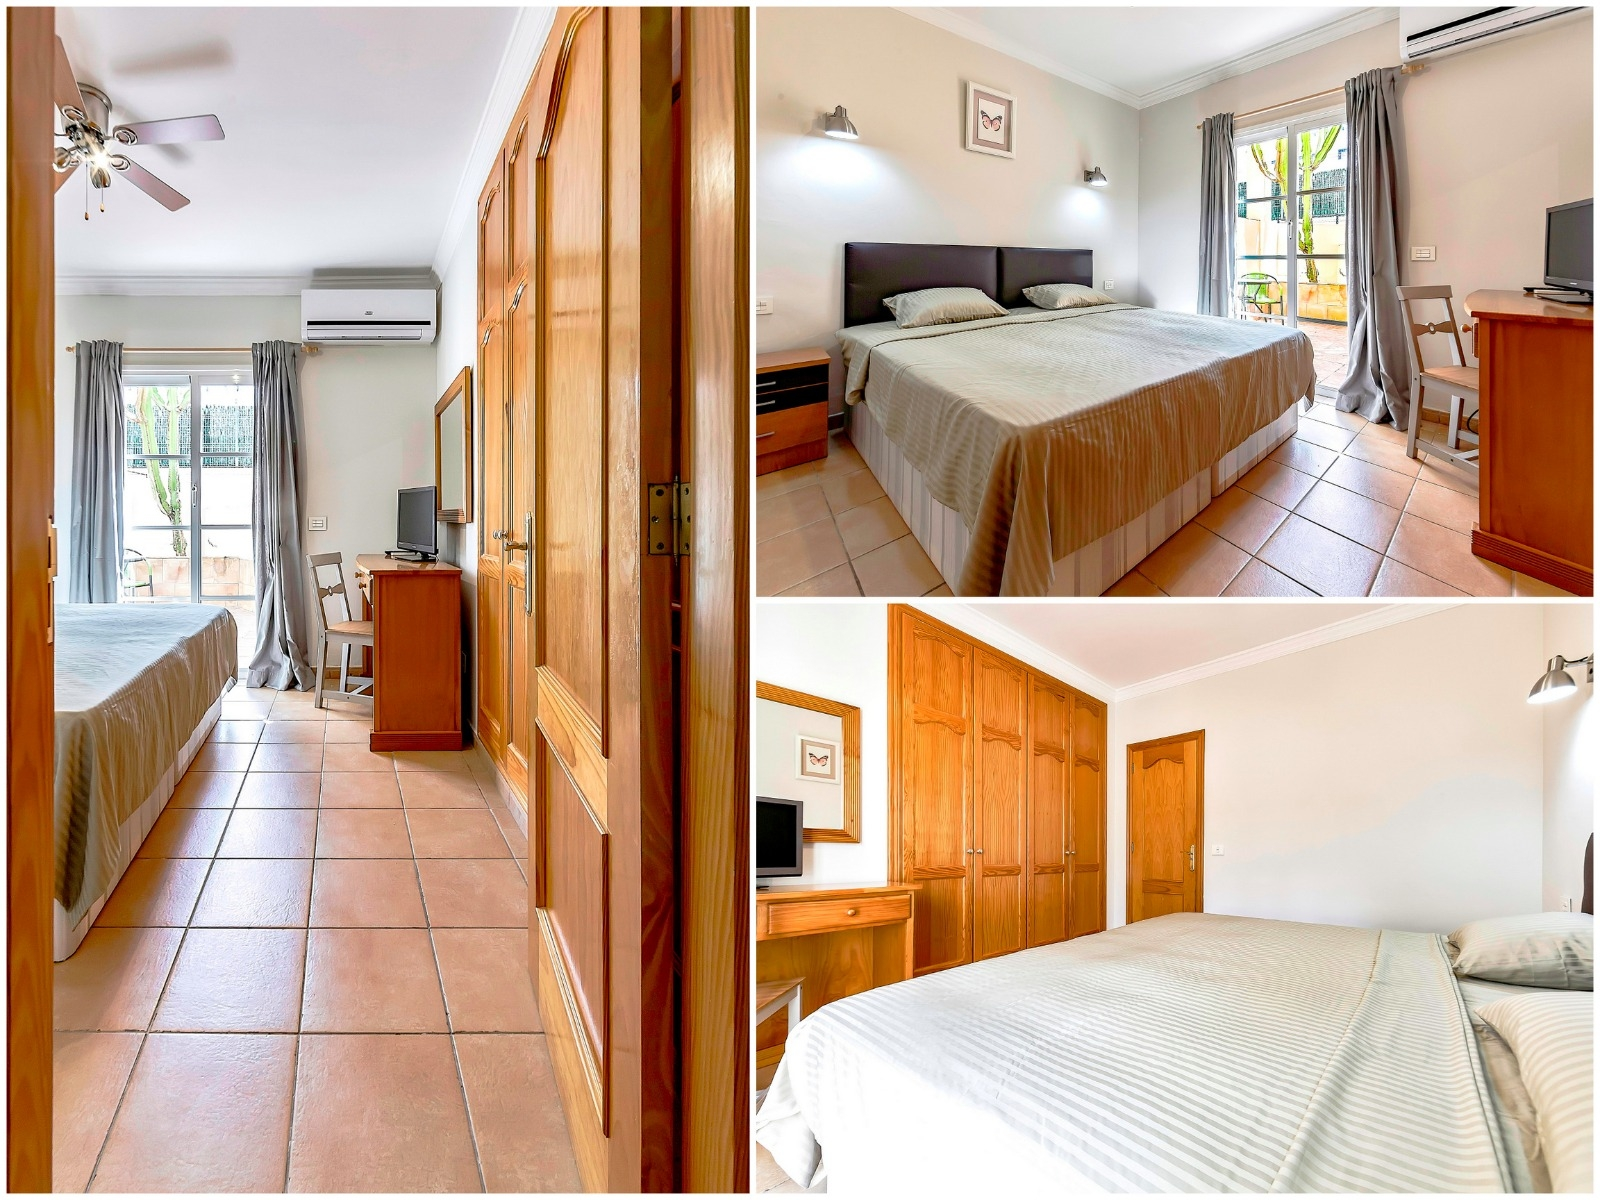 Properties for Sale in Tenerife, Canary Islands, Spain | SylkWayStar Real Estate. 1 bedroom apartment Yucca Park. Image-22567